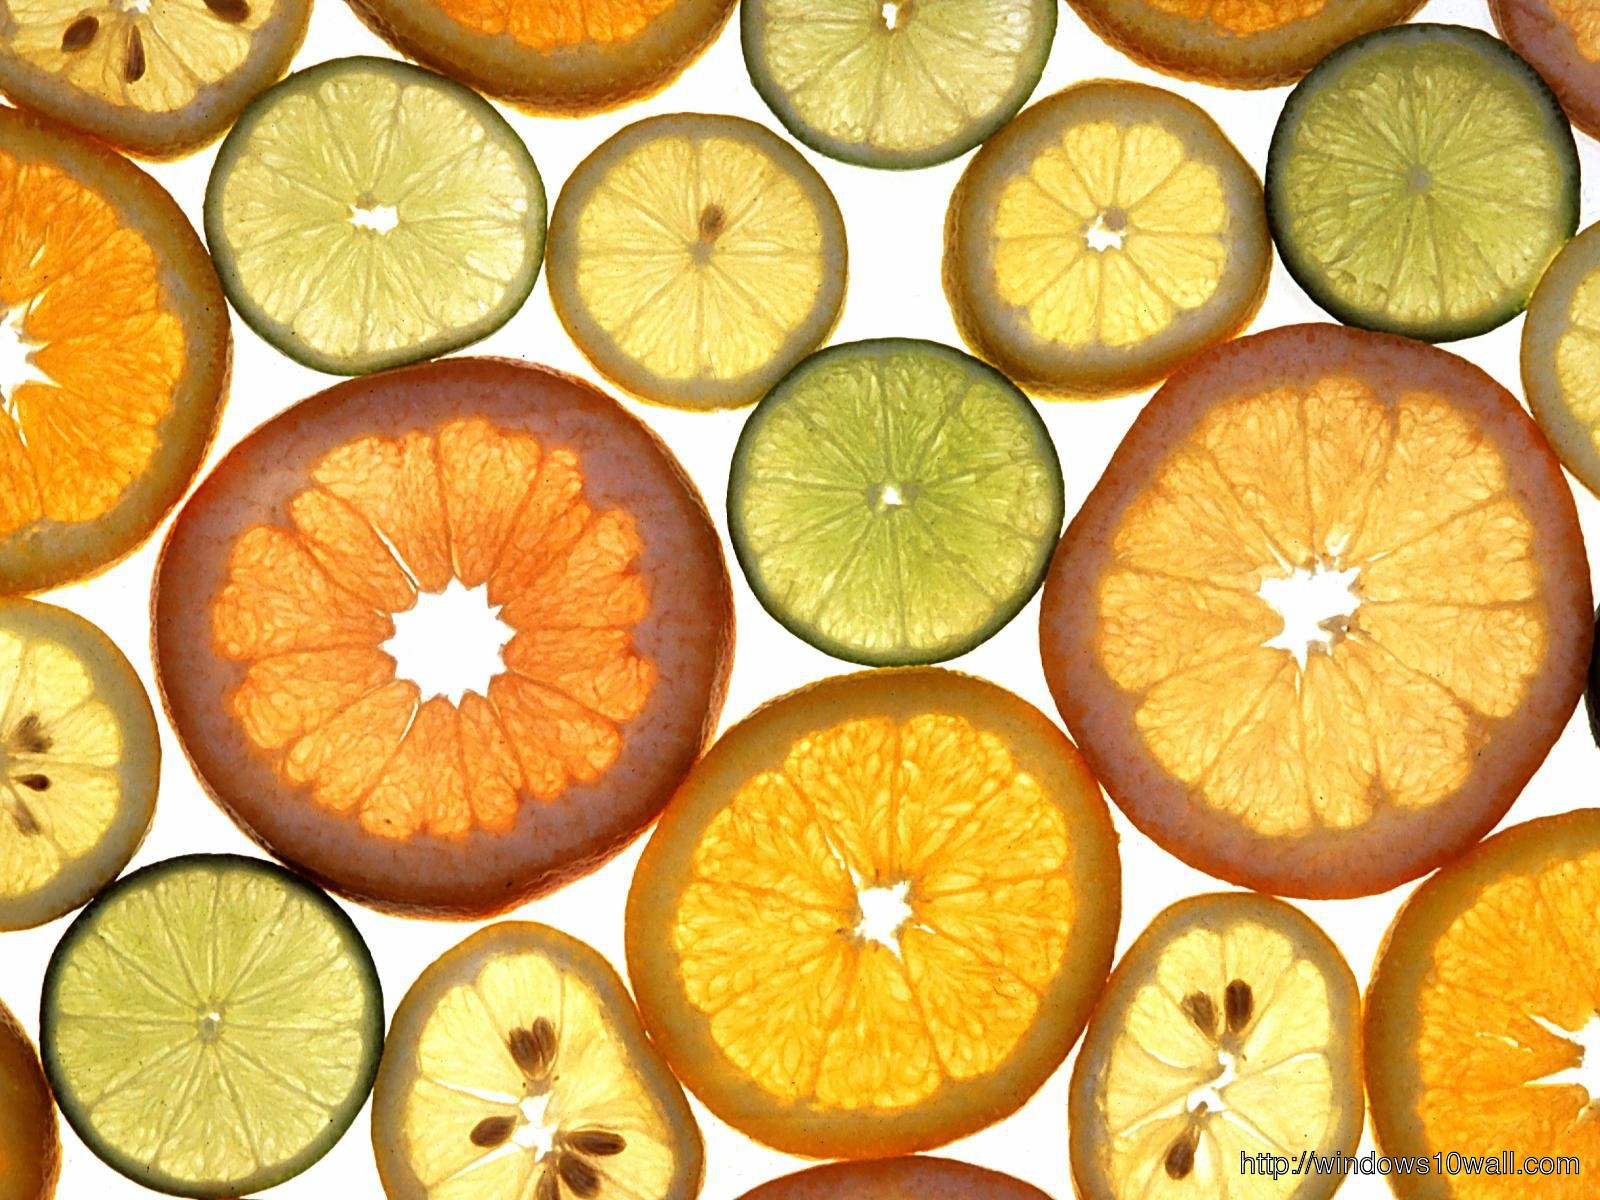 fruits-wallpaper-to-download